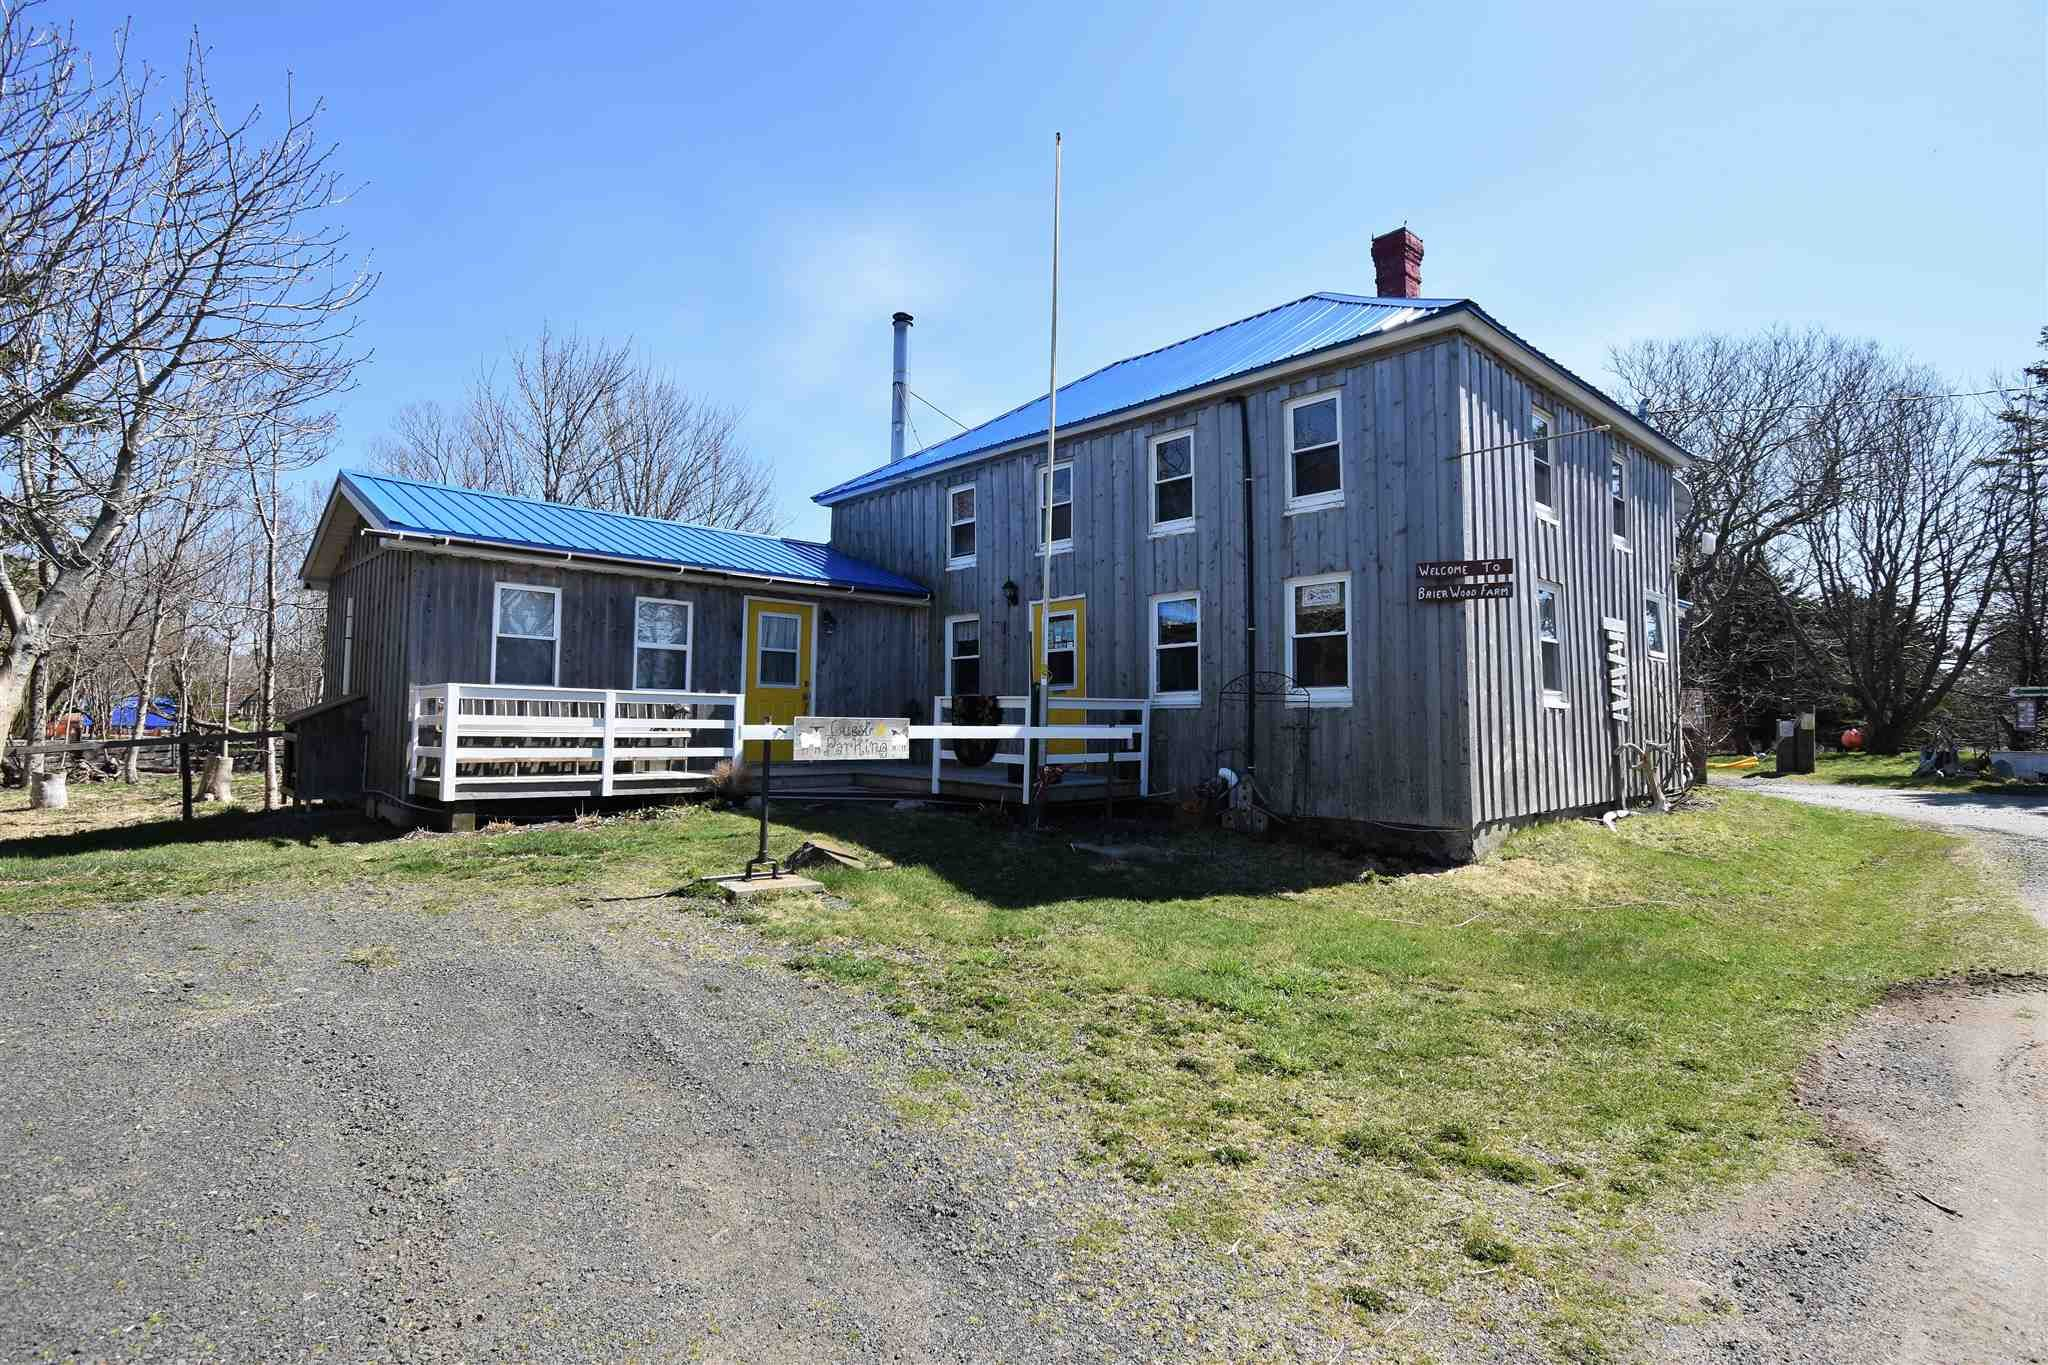 Main Photo: 33 CHURCH Street in Westport: 401-Digby County Residential for sale (Annapolis Valley)  : MLS®# 202109116